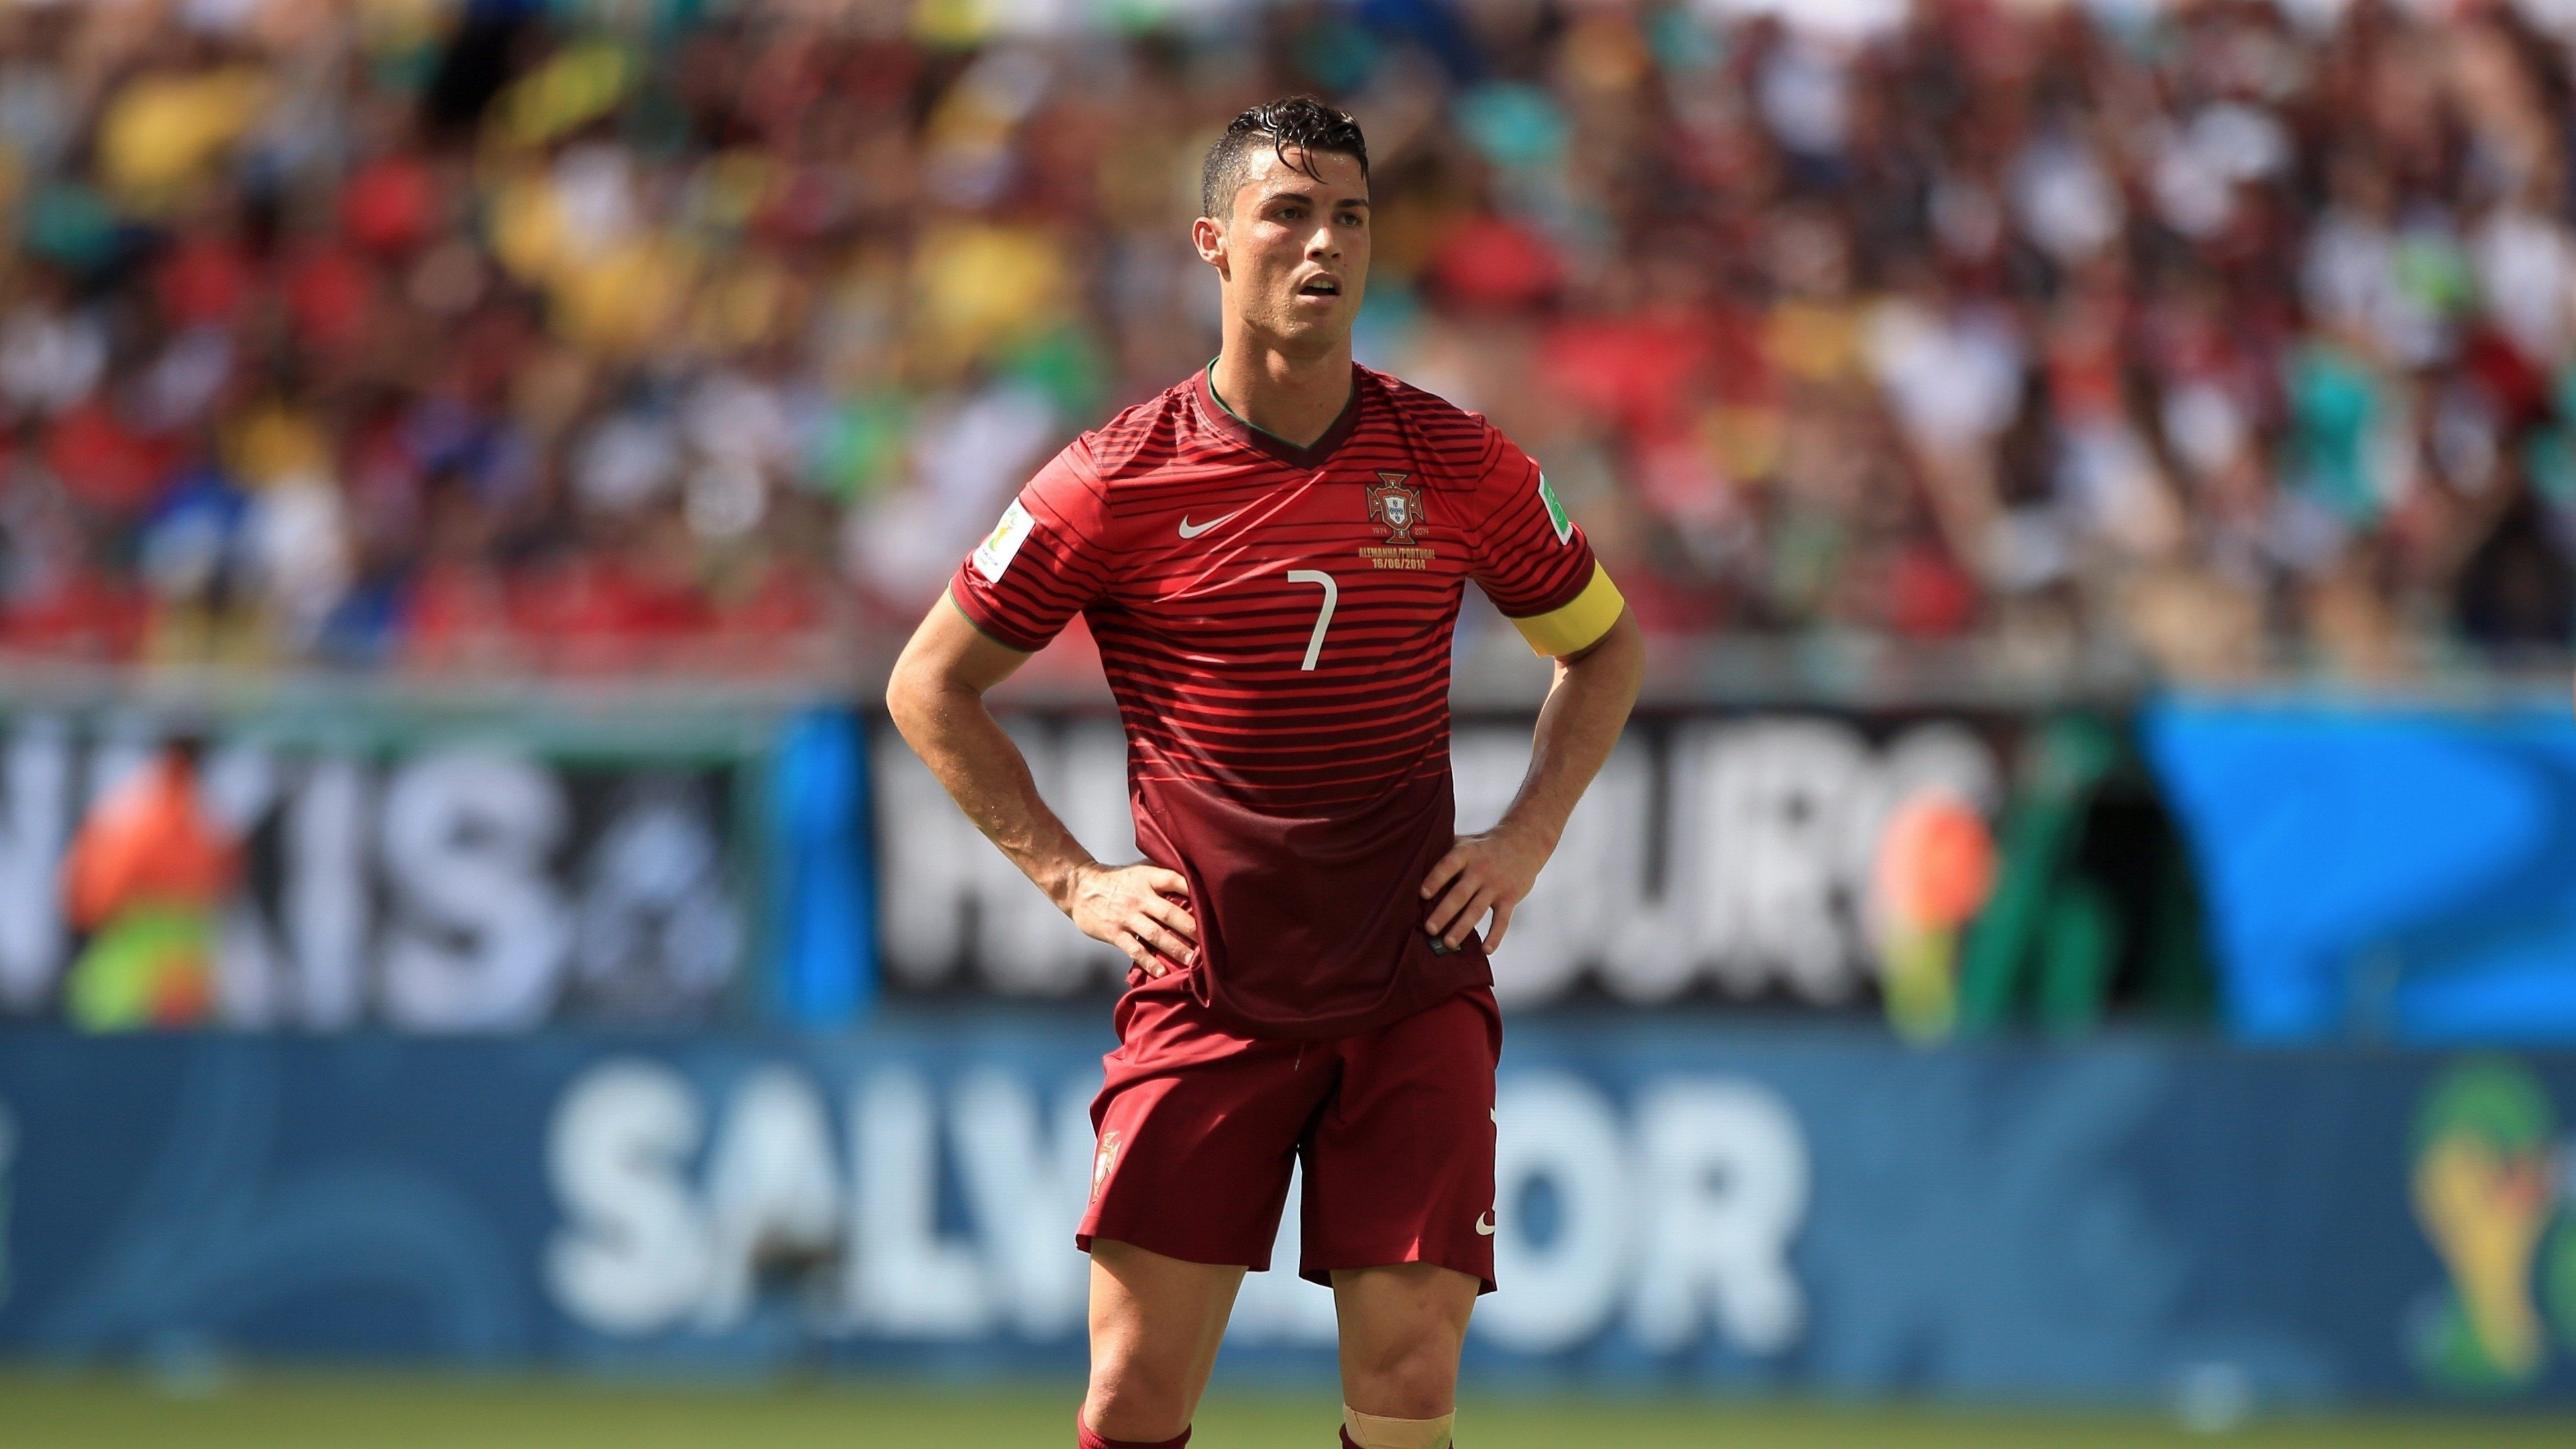 Portugal ronaldo cristiano ronaldo hd wallpapers - C ronaldo wallpaper portugal ...